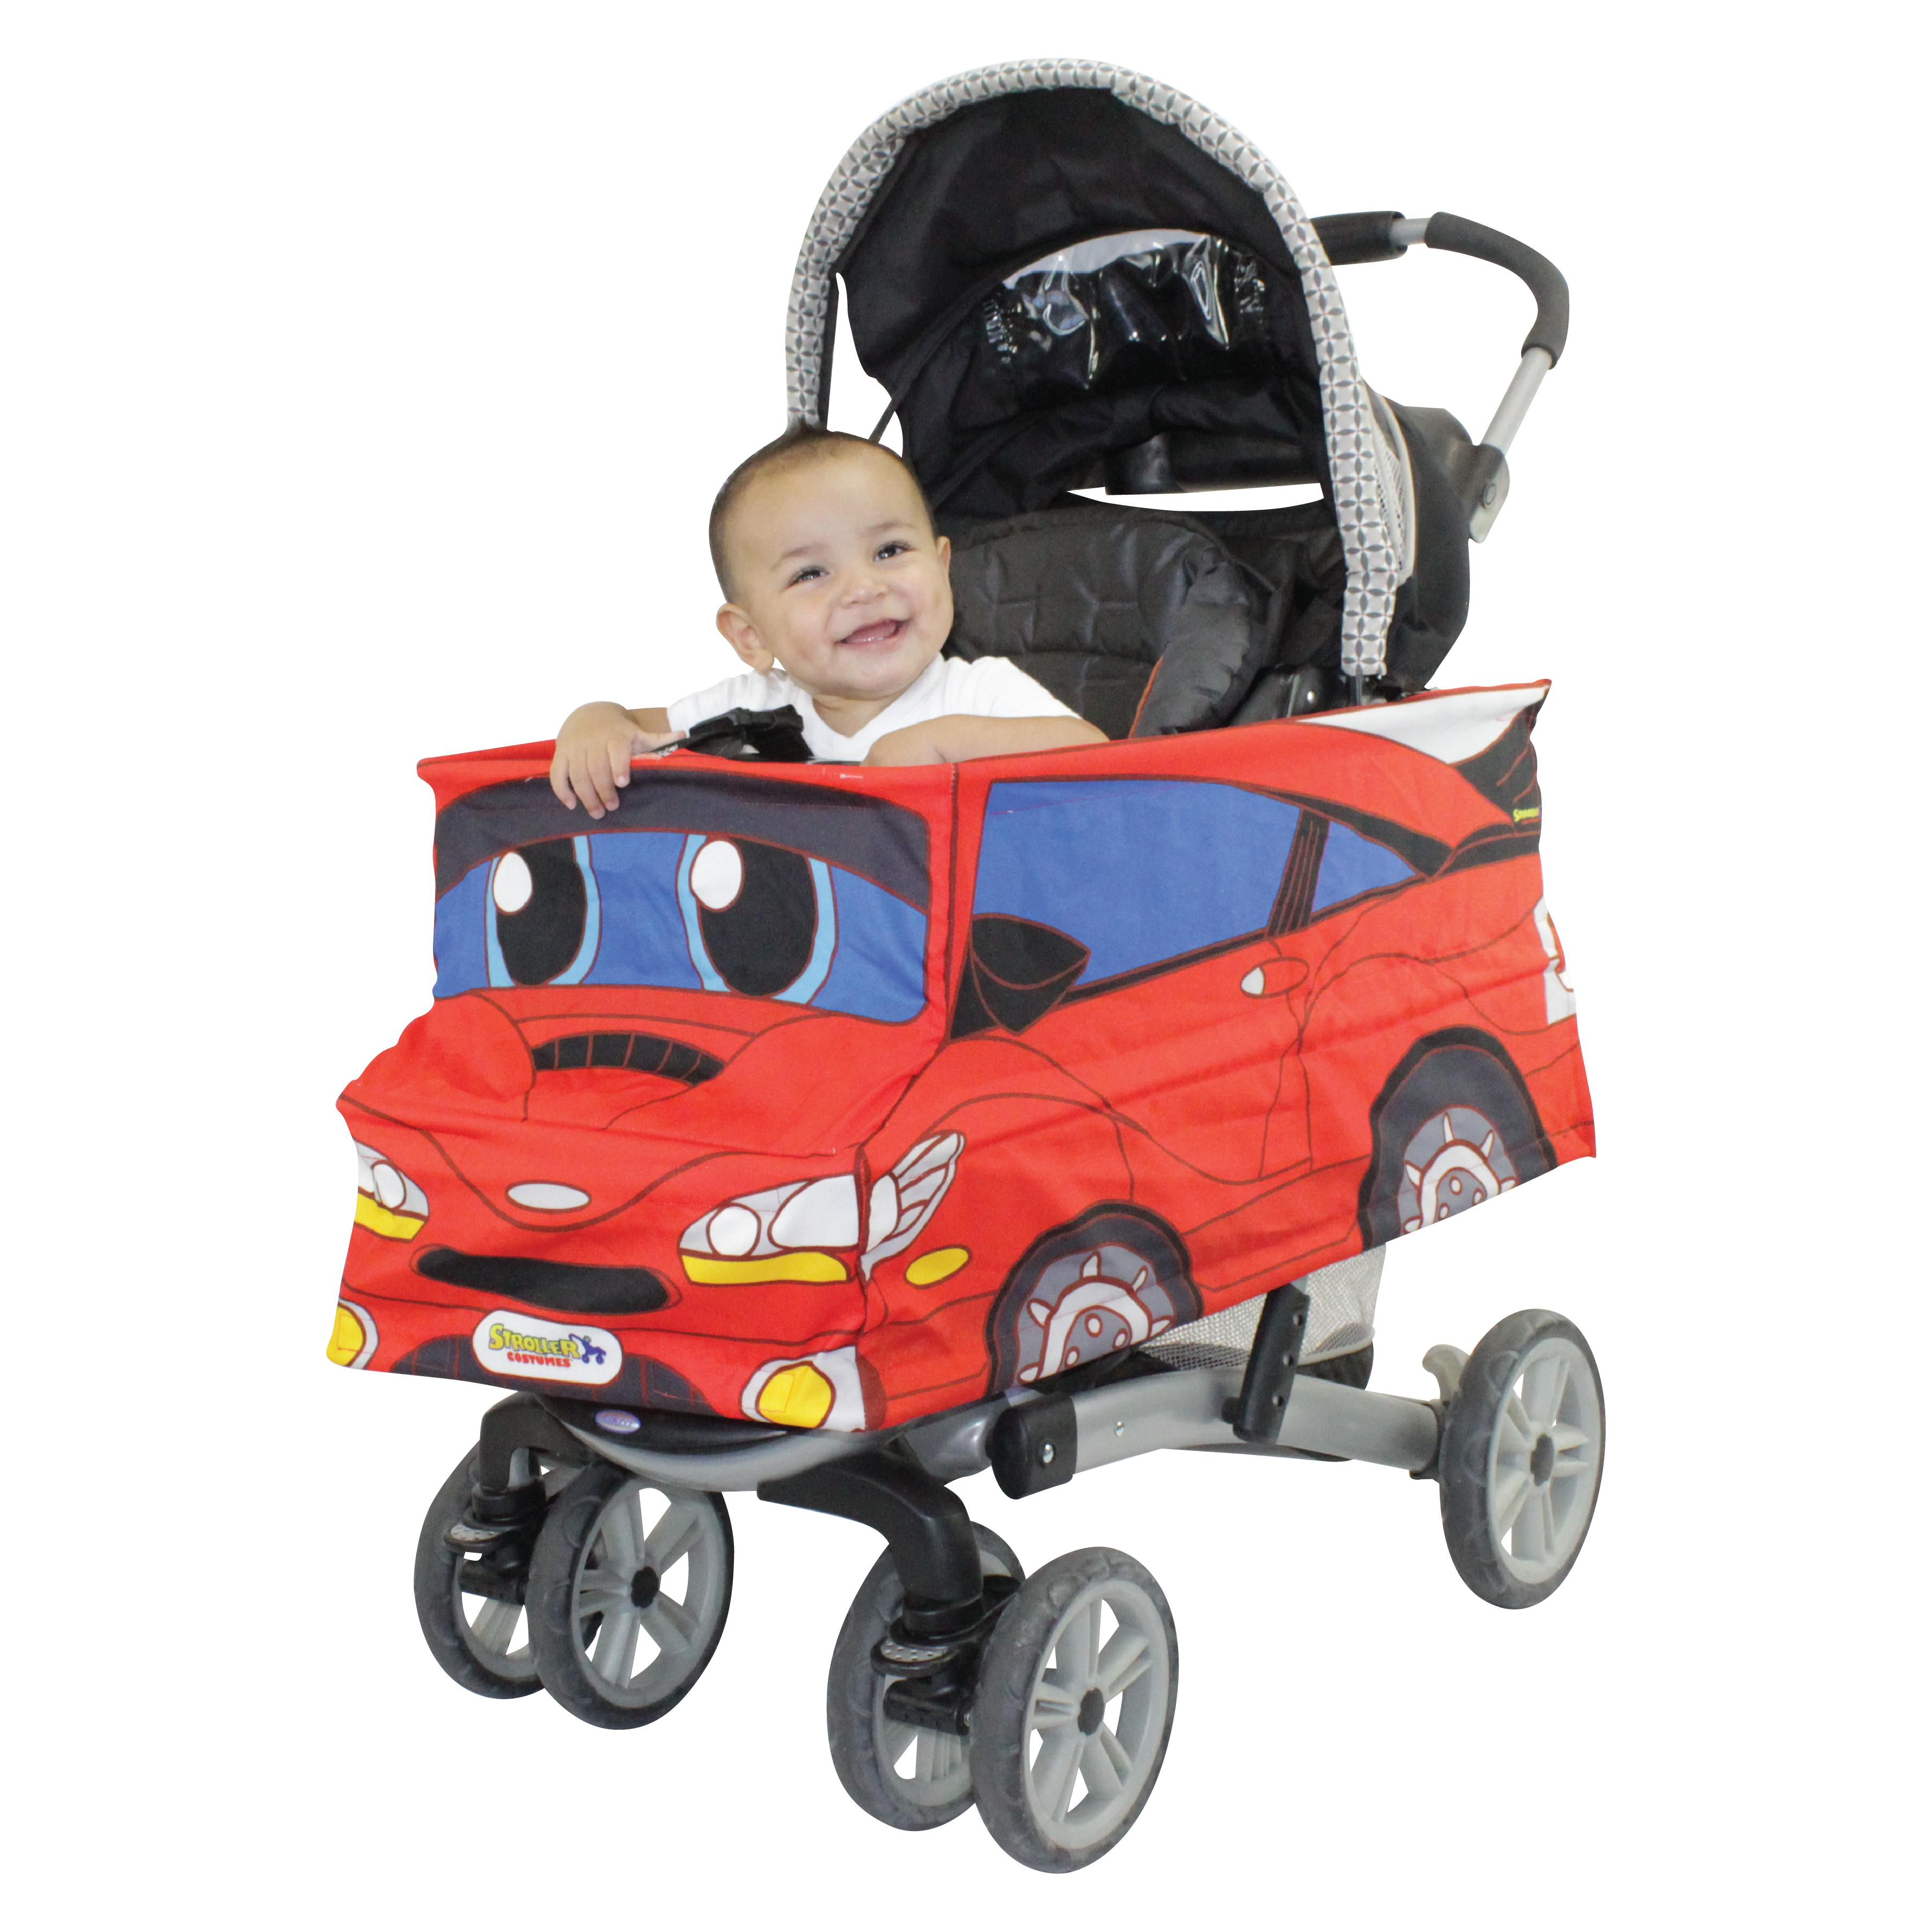 Stroller Car Race Red Race Car Stroller Costume Walmart